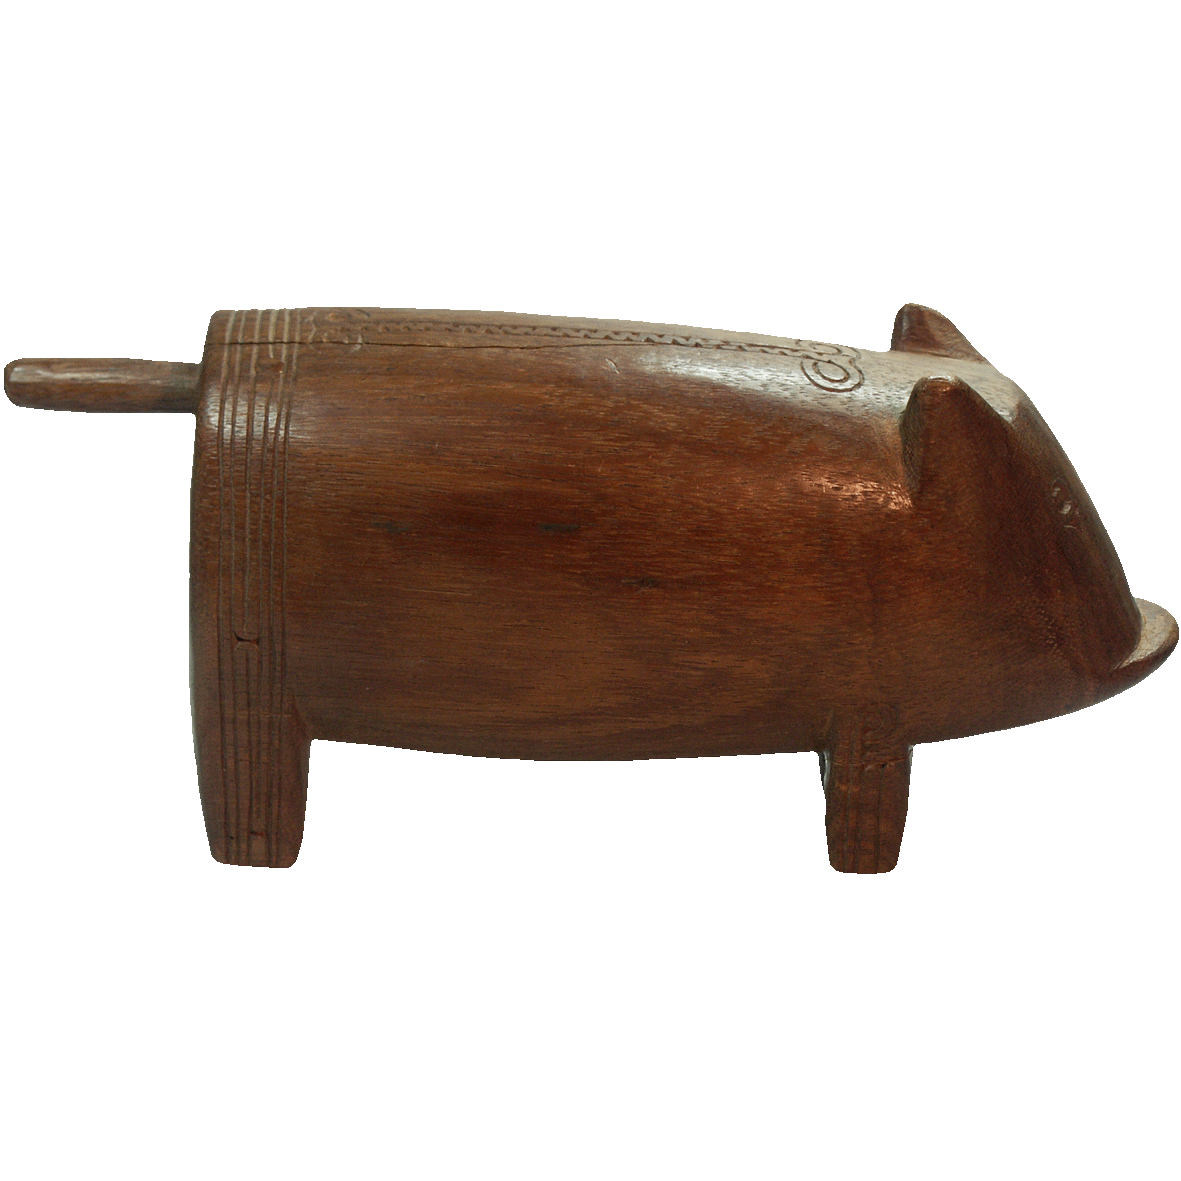 Papua New Guinea, Pig made from Wood (reverse)